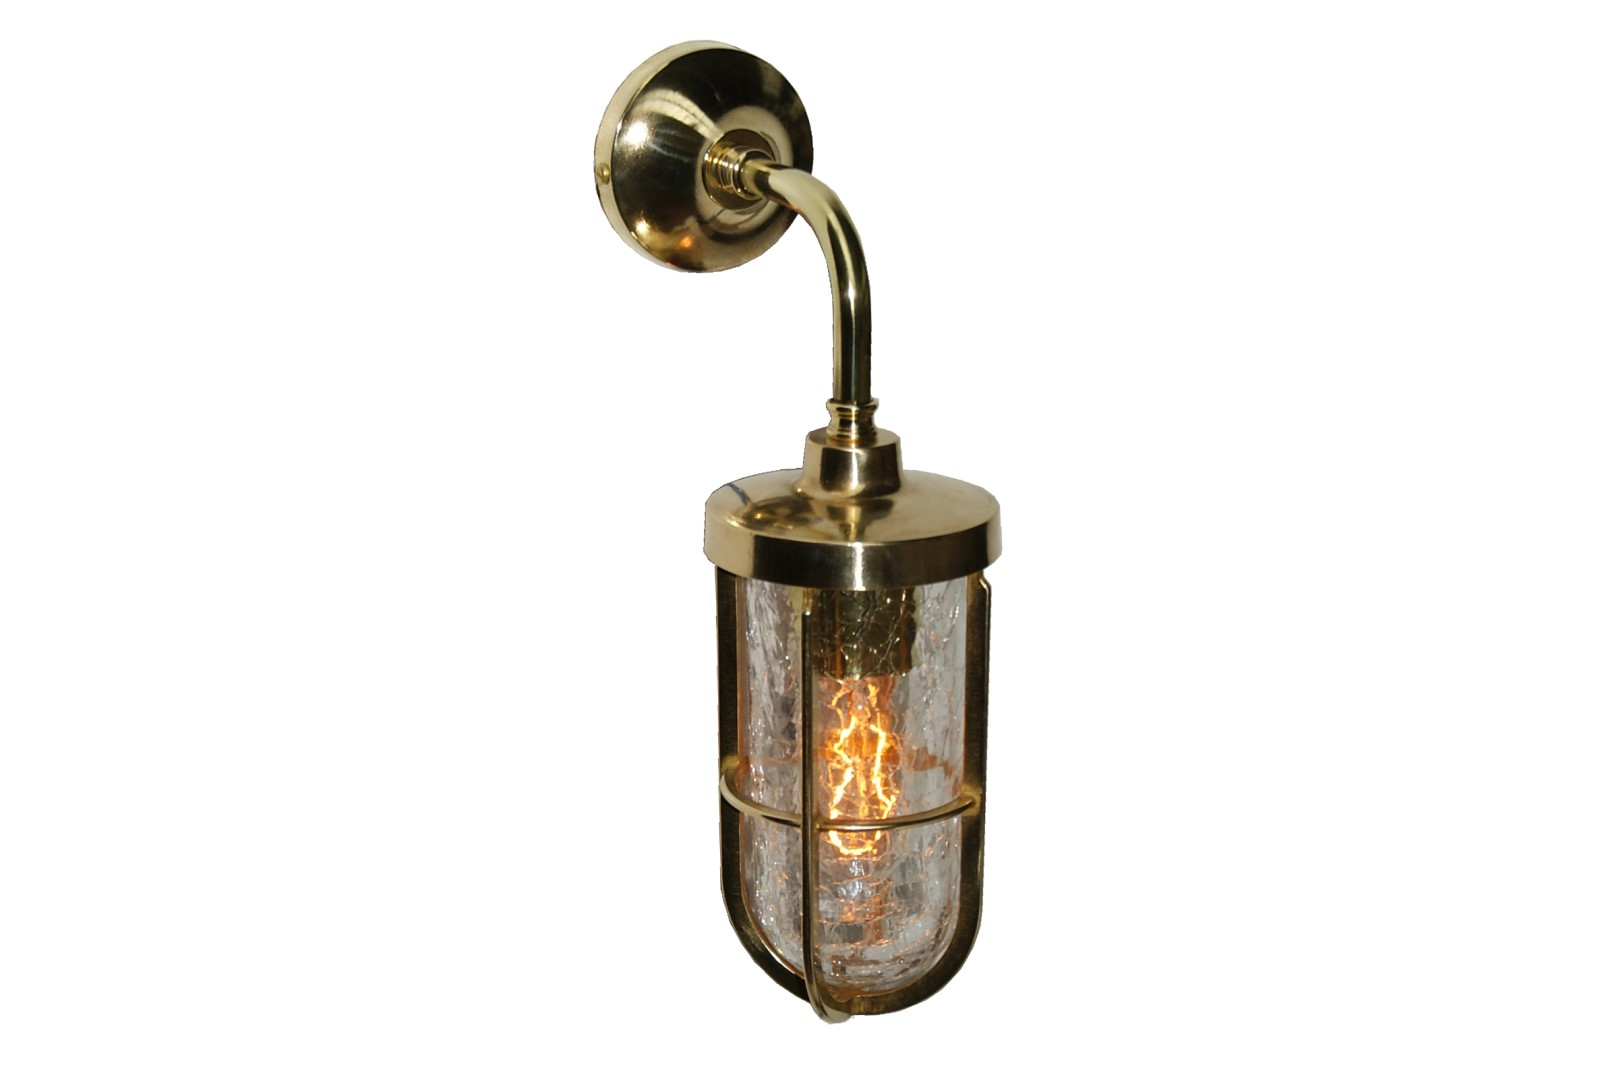 Carac Well Glass Wall Light Polished Brass, Crackled Glass